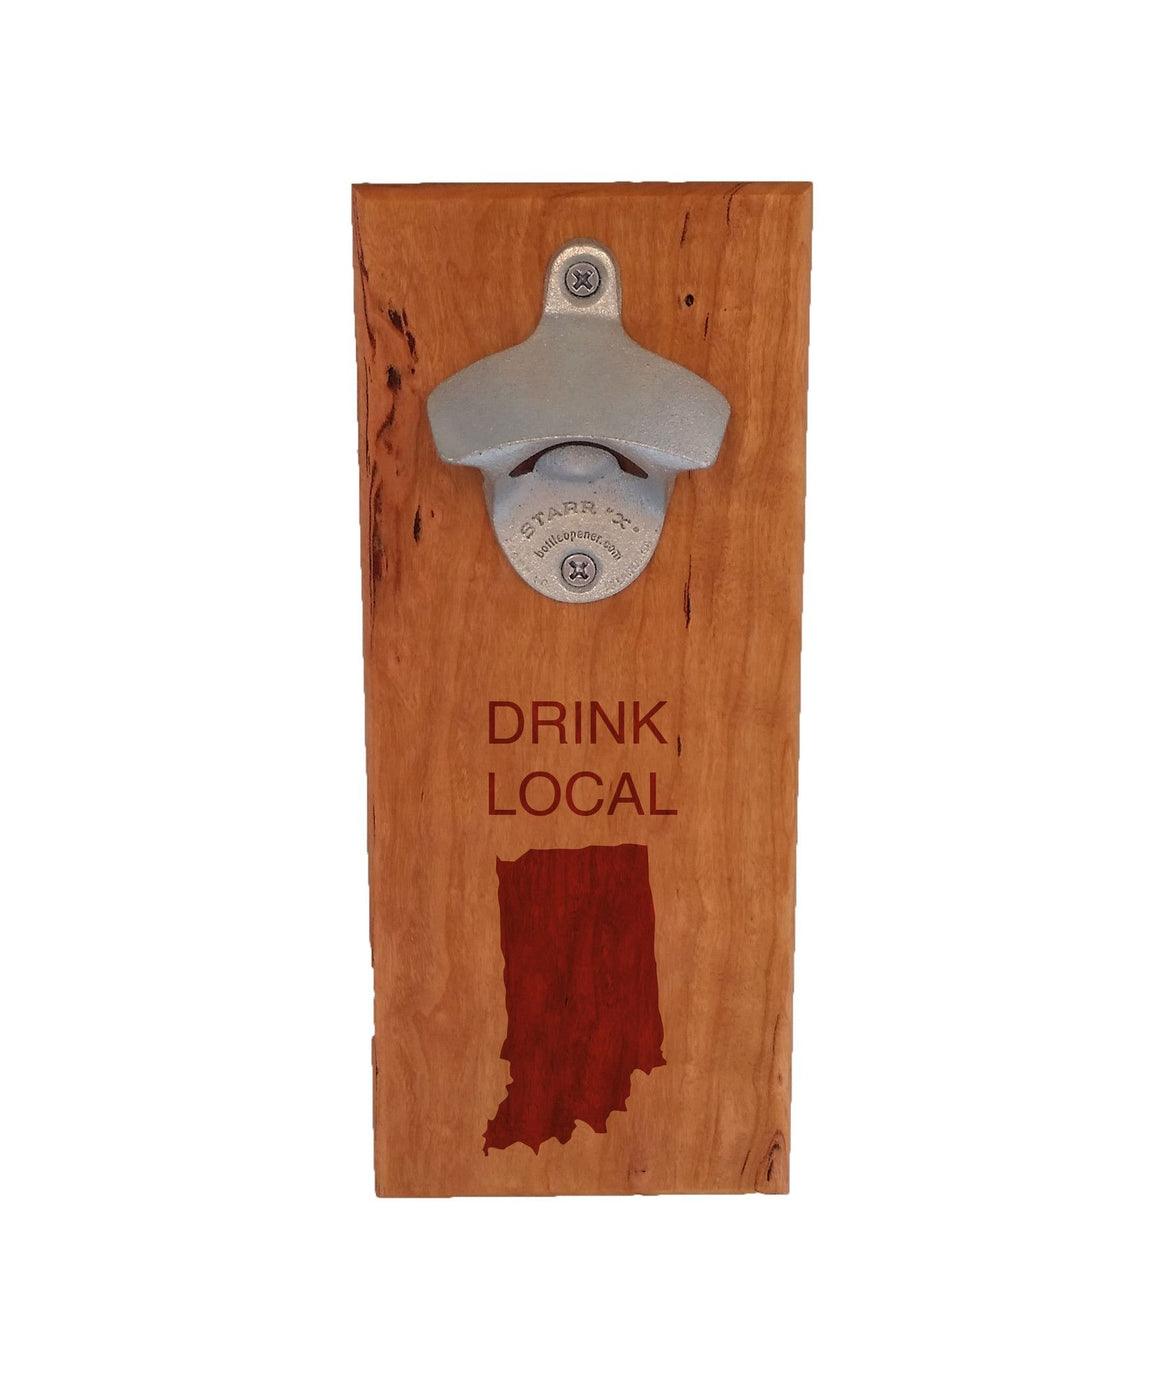 Wall Mount Bottle Opener - Drink Local - Bottle Opener -  - District 31 - 1